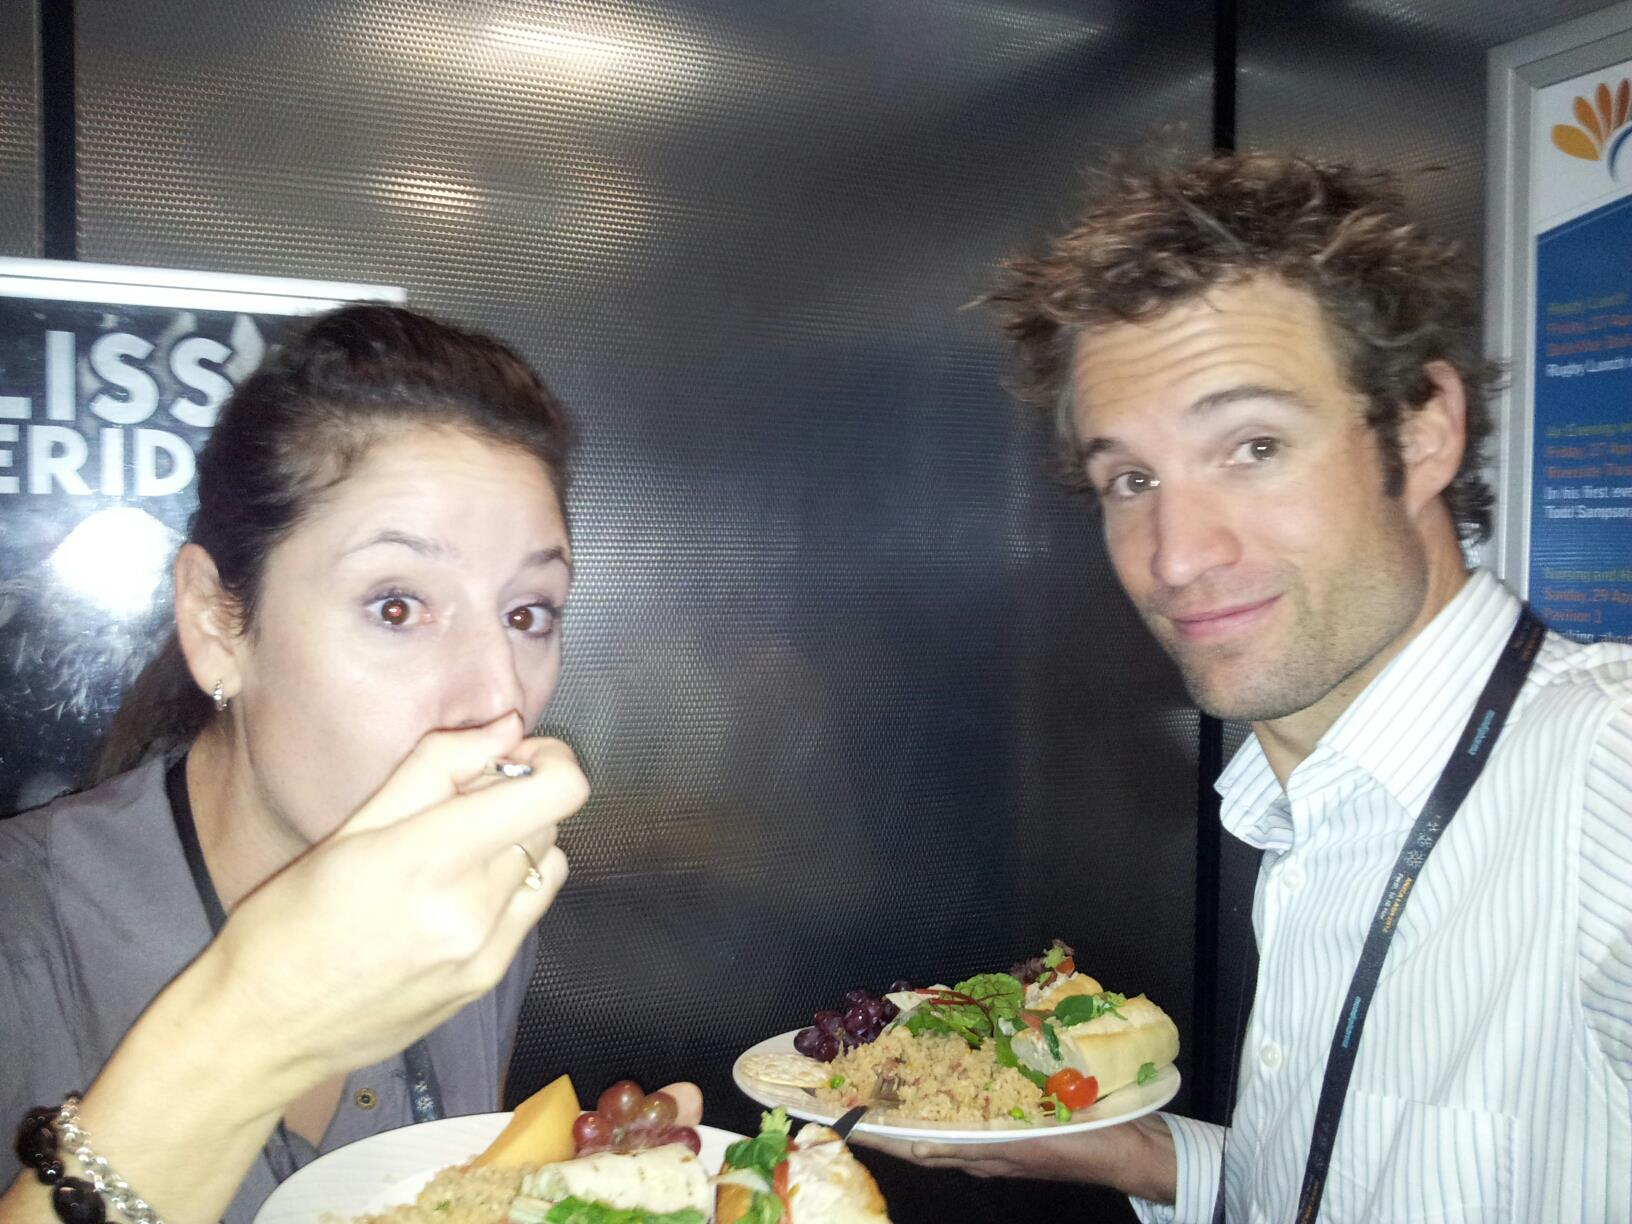 Grabbing a quick lunch in an elevator!